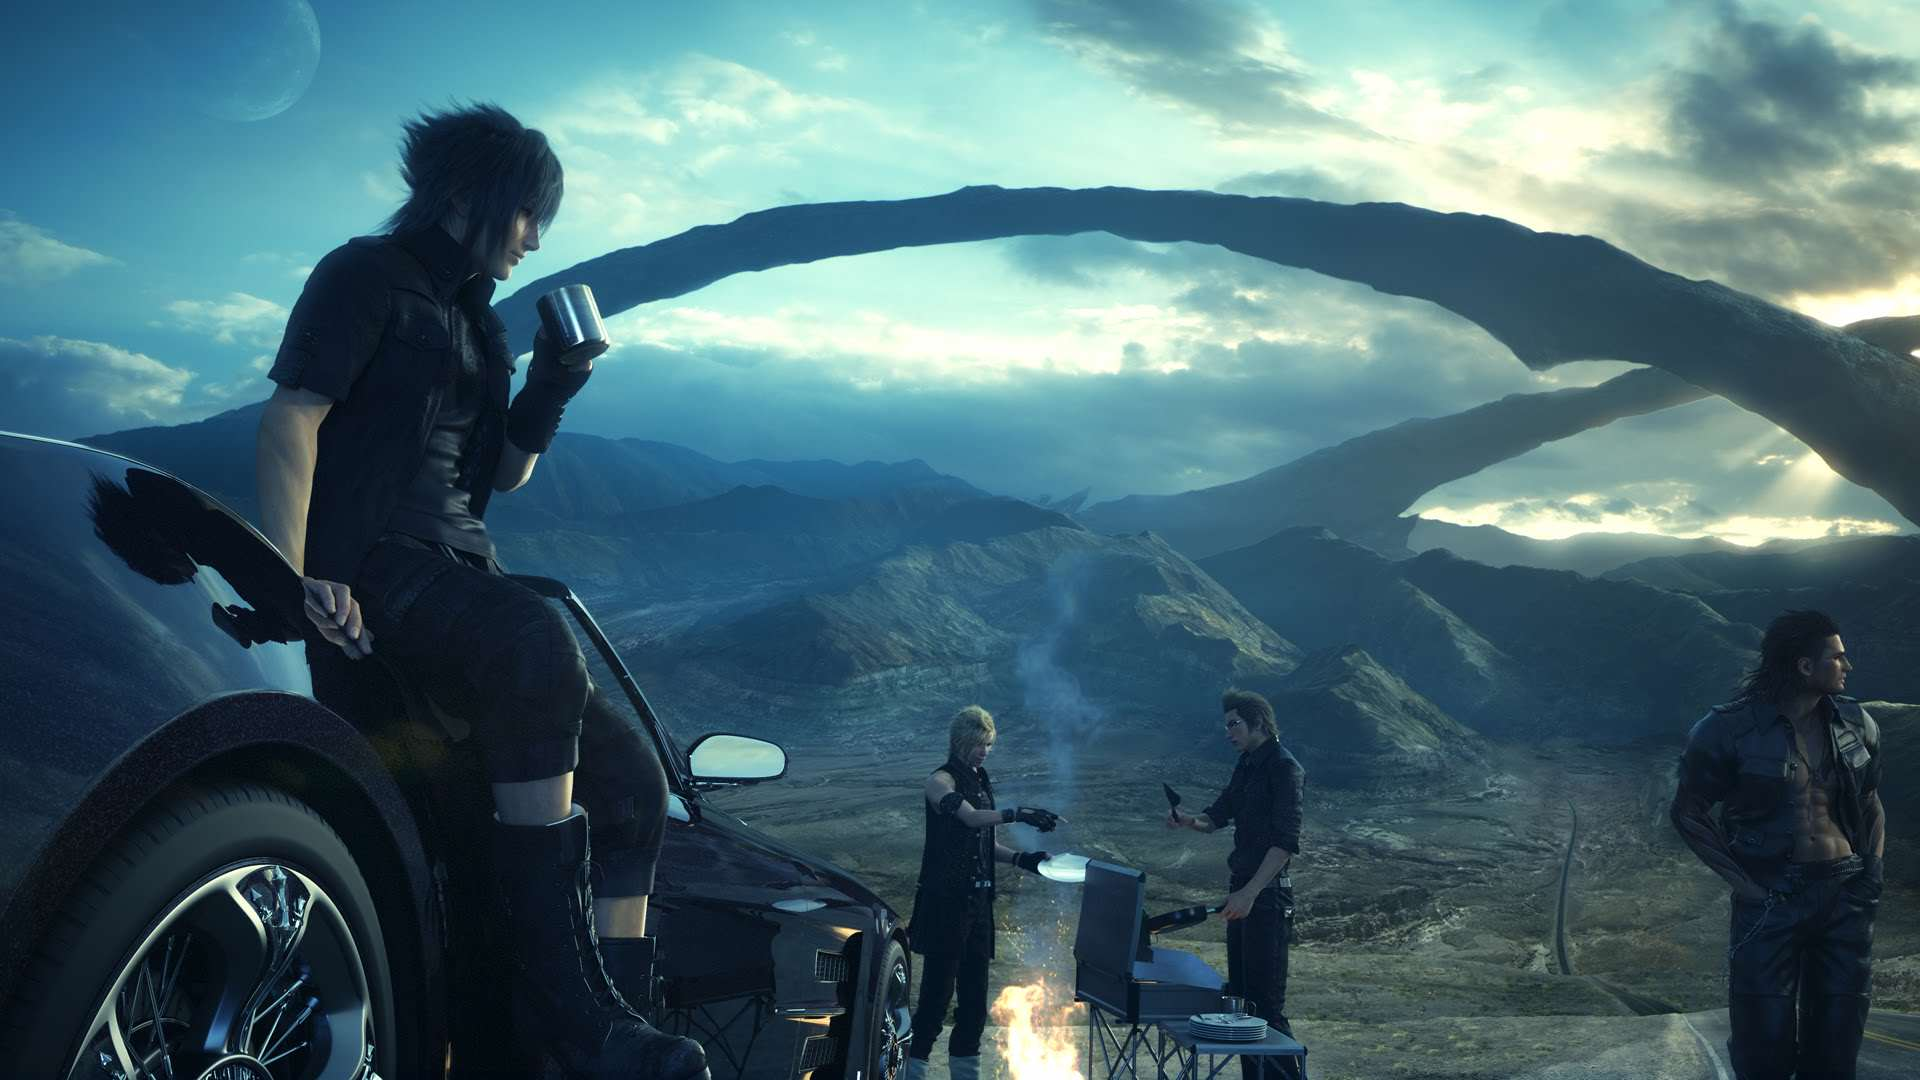 Square Enix Boast Biggest Ever Lineup For Gamescom 2016 28a1135dcf744f0f4accb3785e5e0379